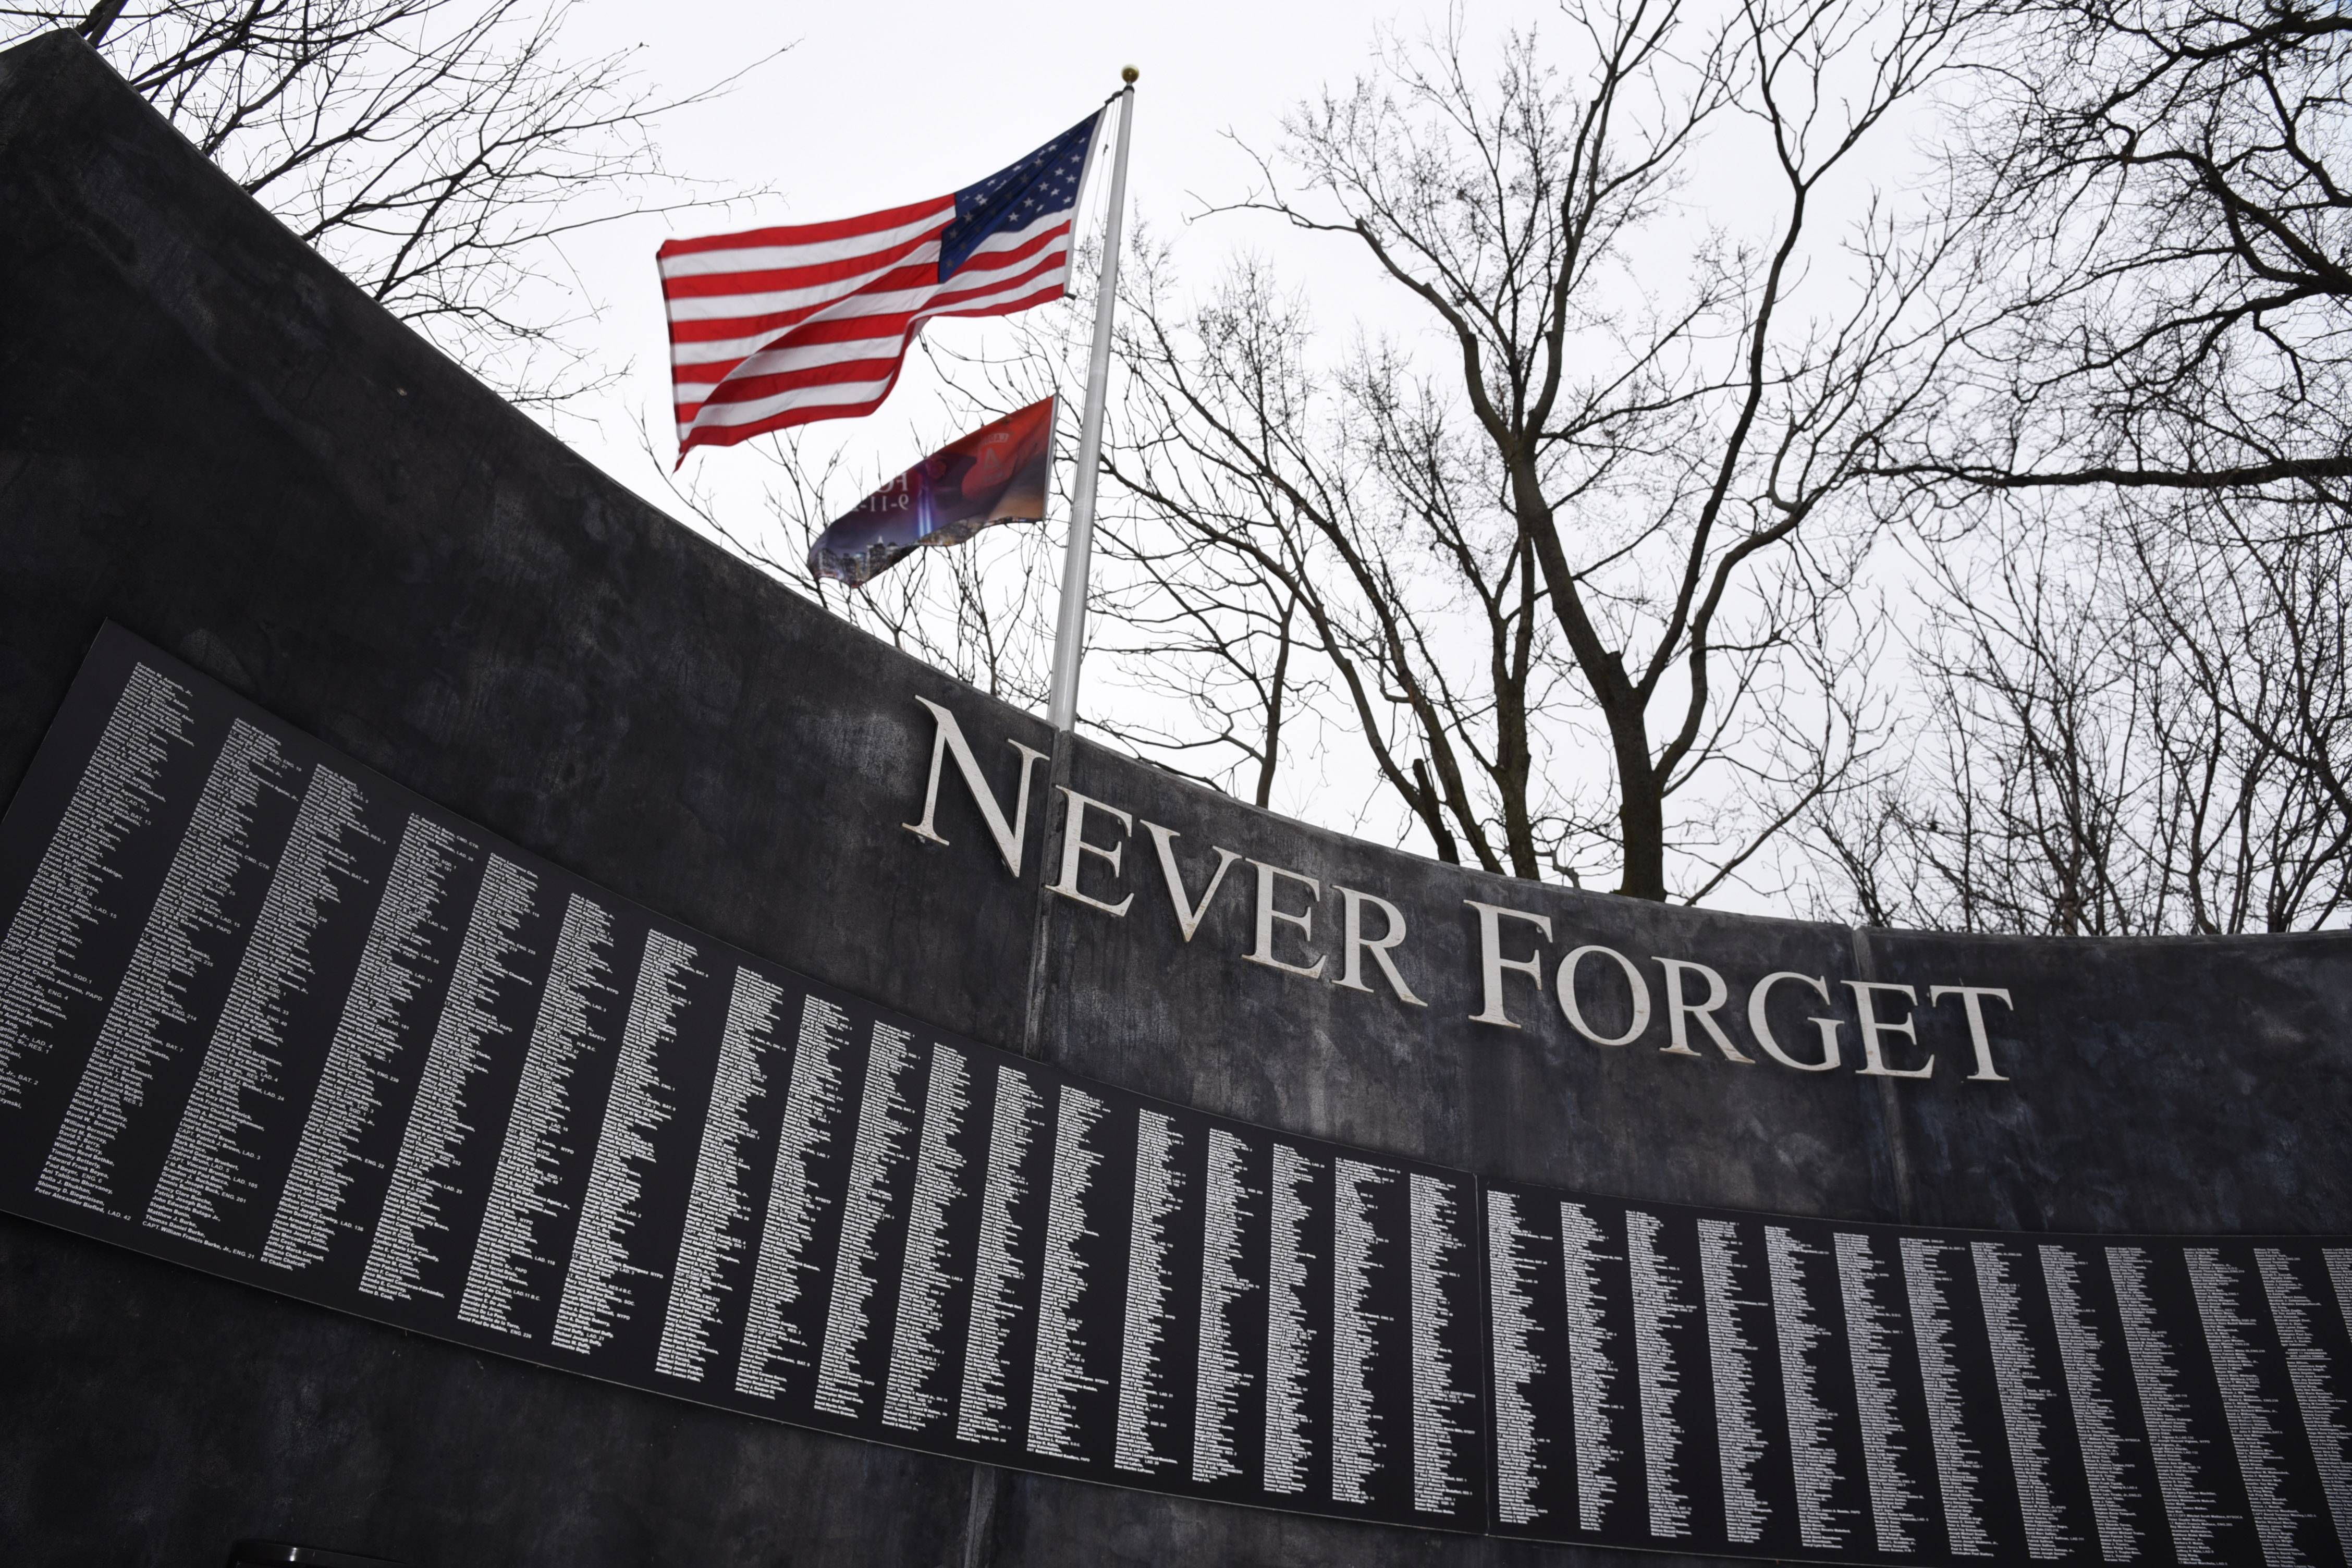 The Heroes of Freedom Memorial in Wauconda, which features a large beam from the World Trade Center, also should include storyboards honoring those who fought in the wars in Iraq and Afghanistan, village voters said in an advisory referendum Tuesday.